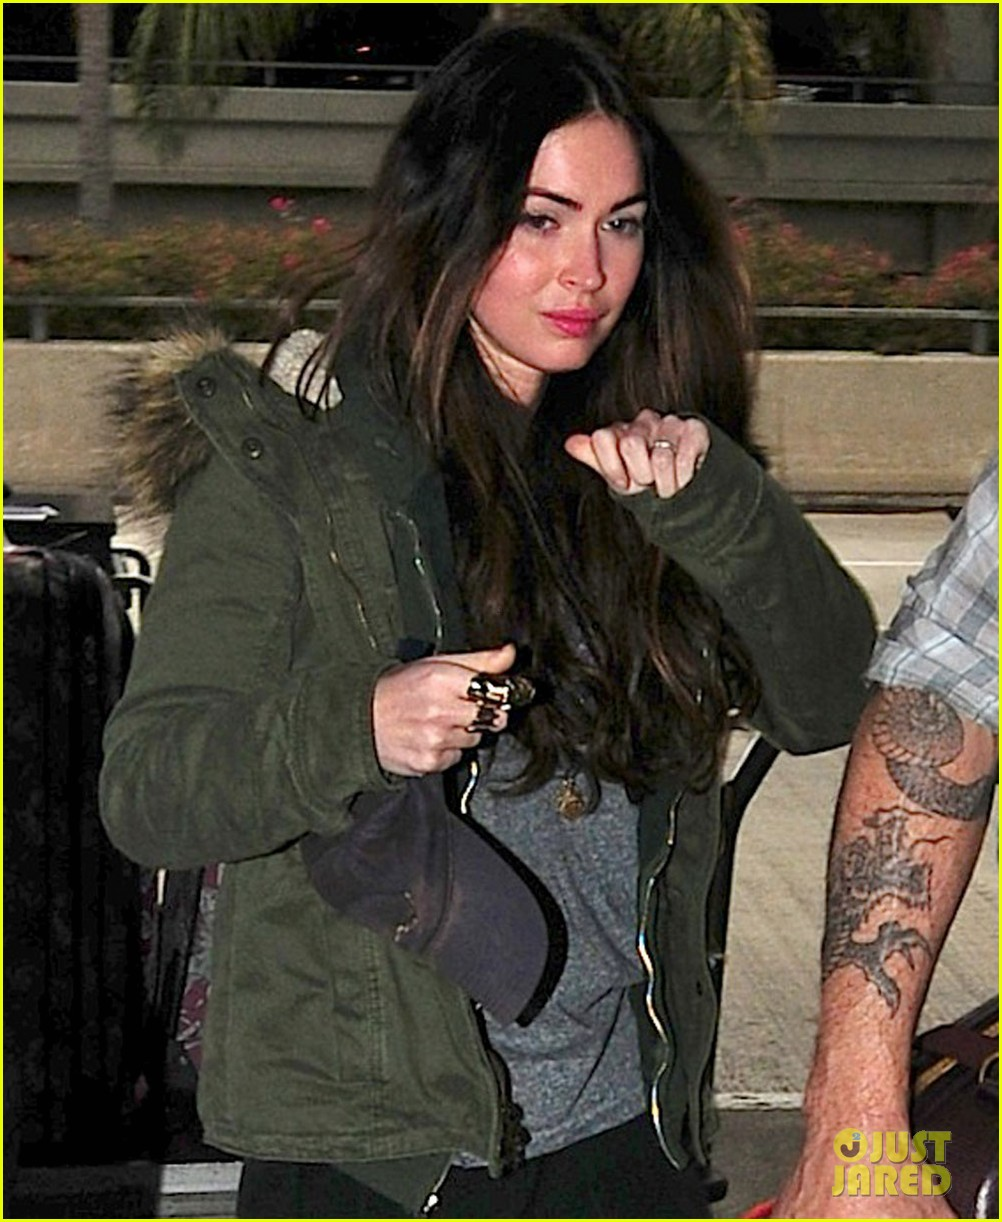 Megan Fox Without Makeup 2012 Megan fox 2012 no makeup meganMegan Fox 2012 No Makeup